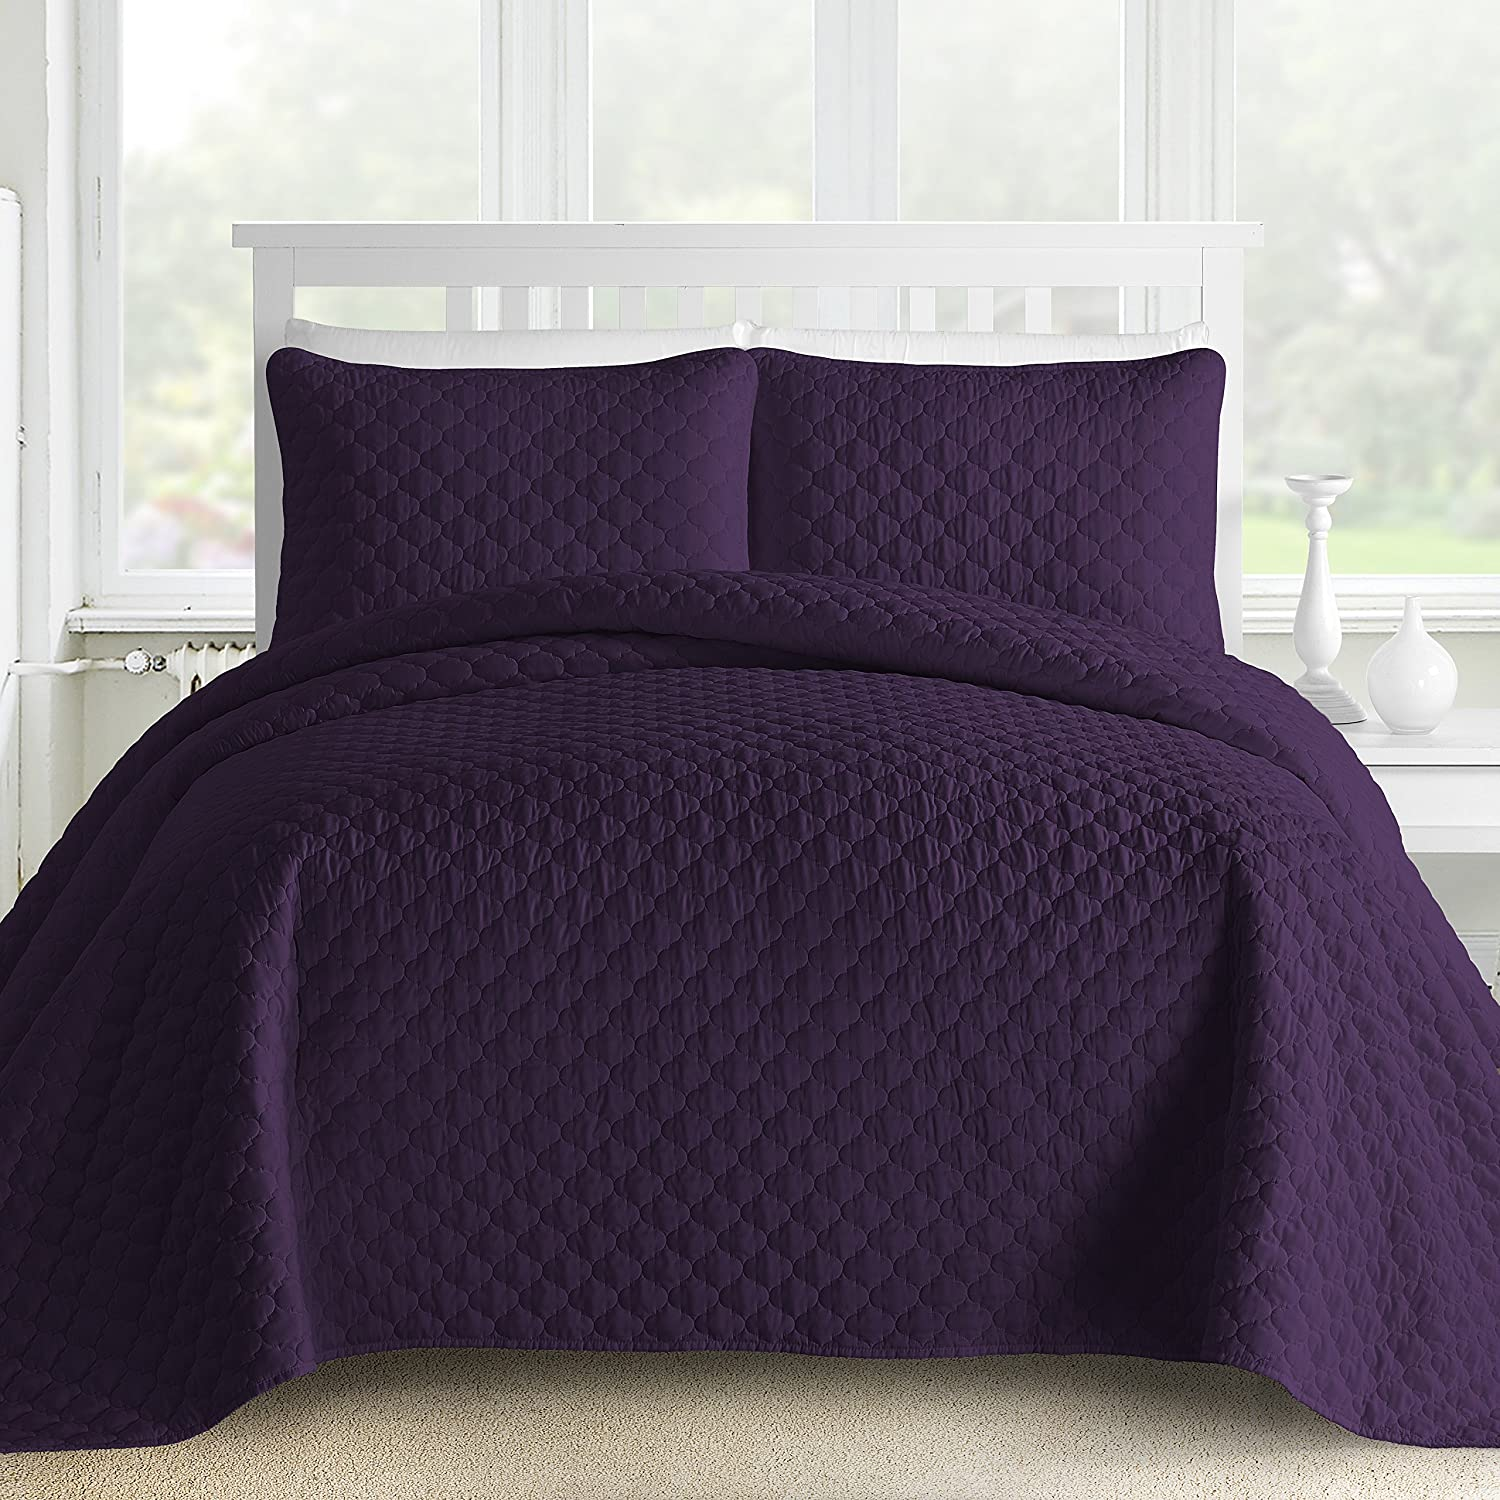 Comfy Bedding 3-Piece Bedspread Coverlet Set Oversized and Prewashed Lantern Ogee Quilted, Cal King, Plum